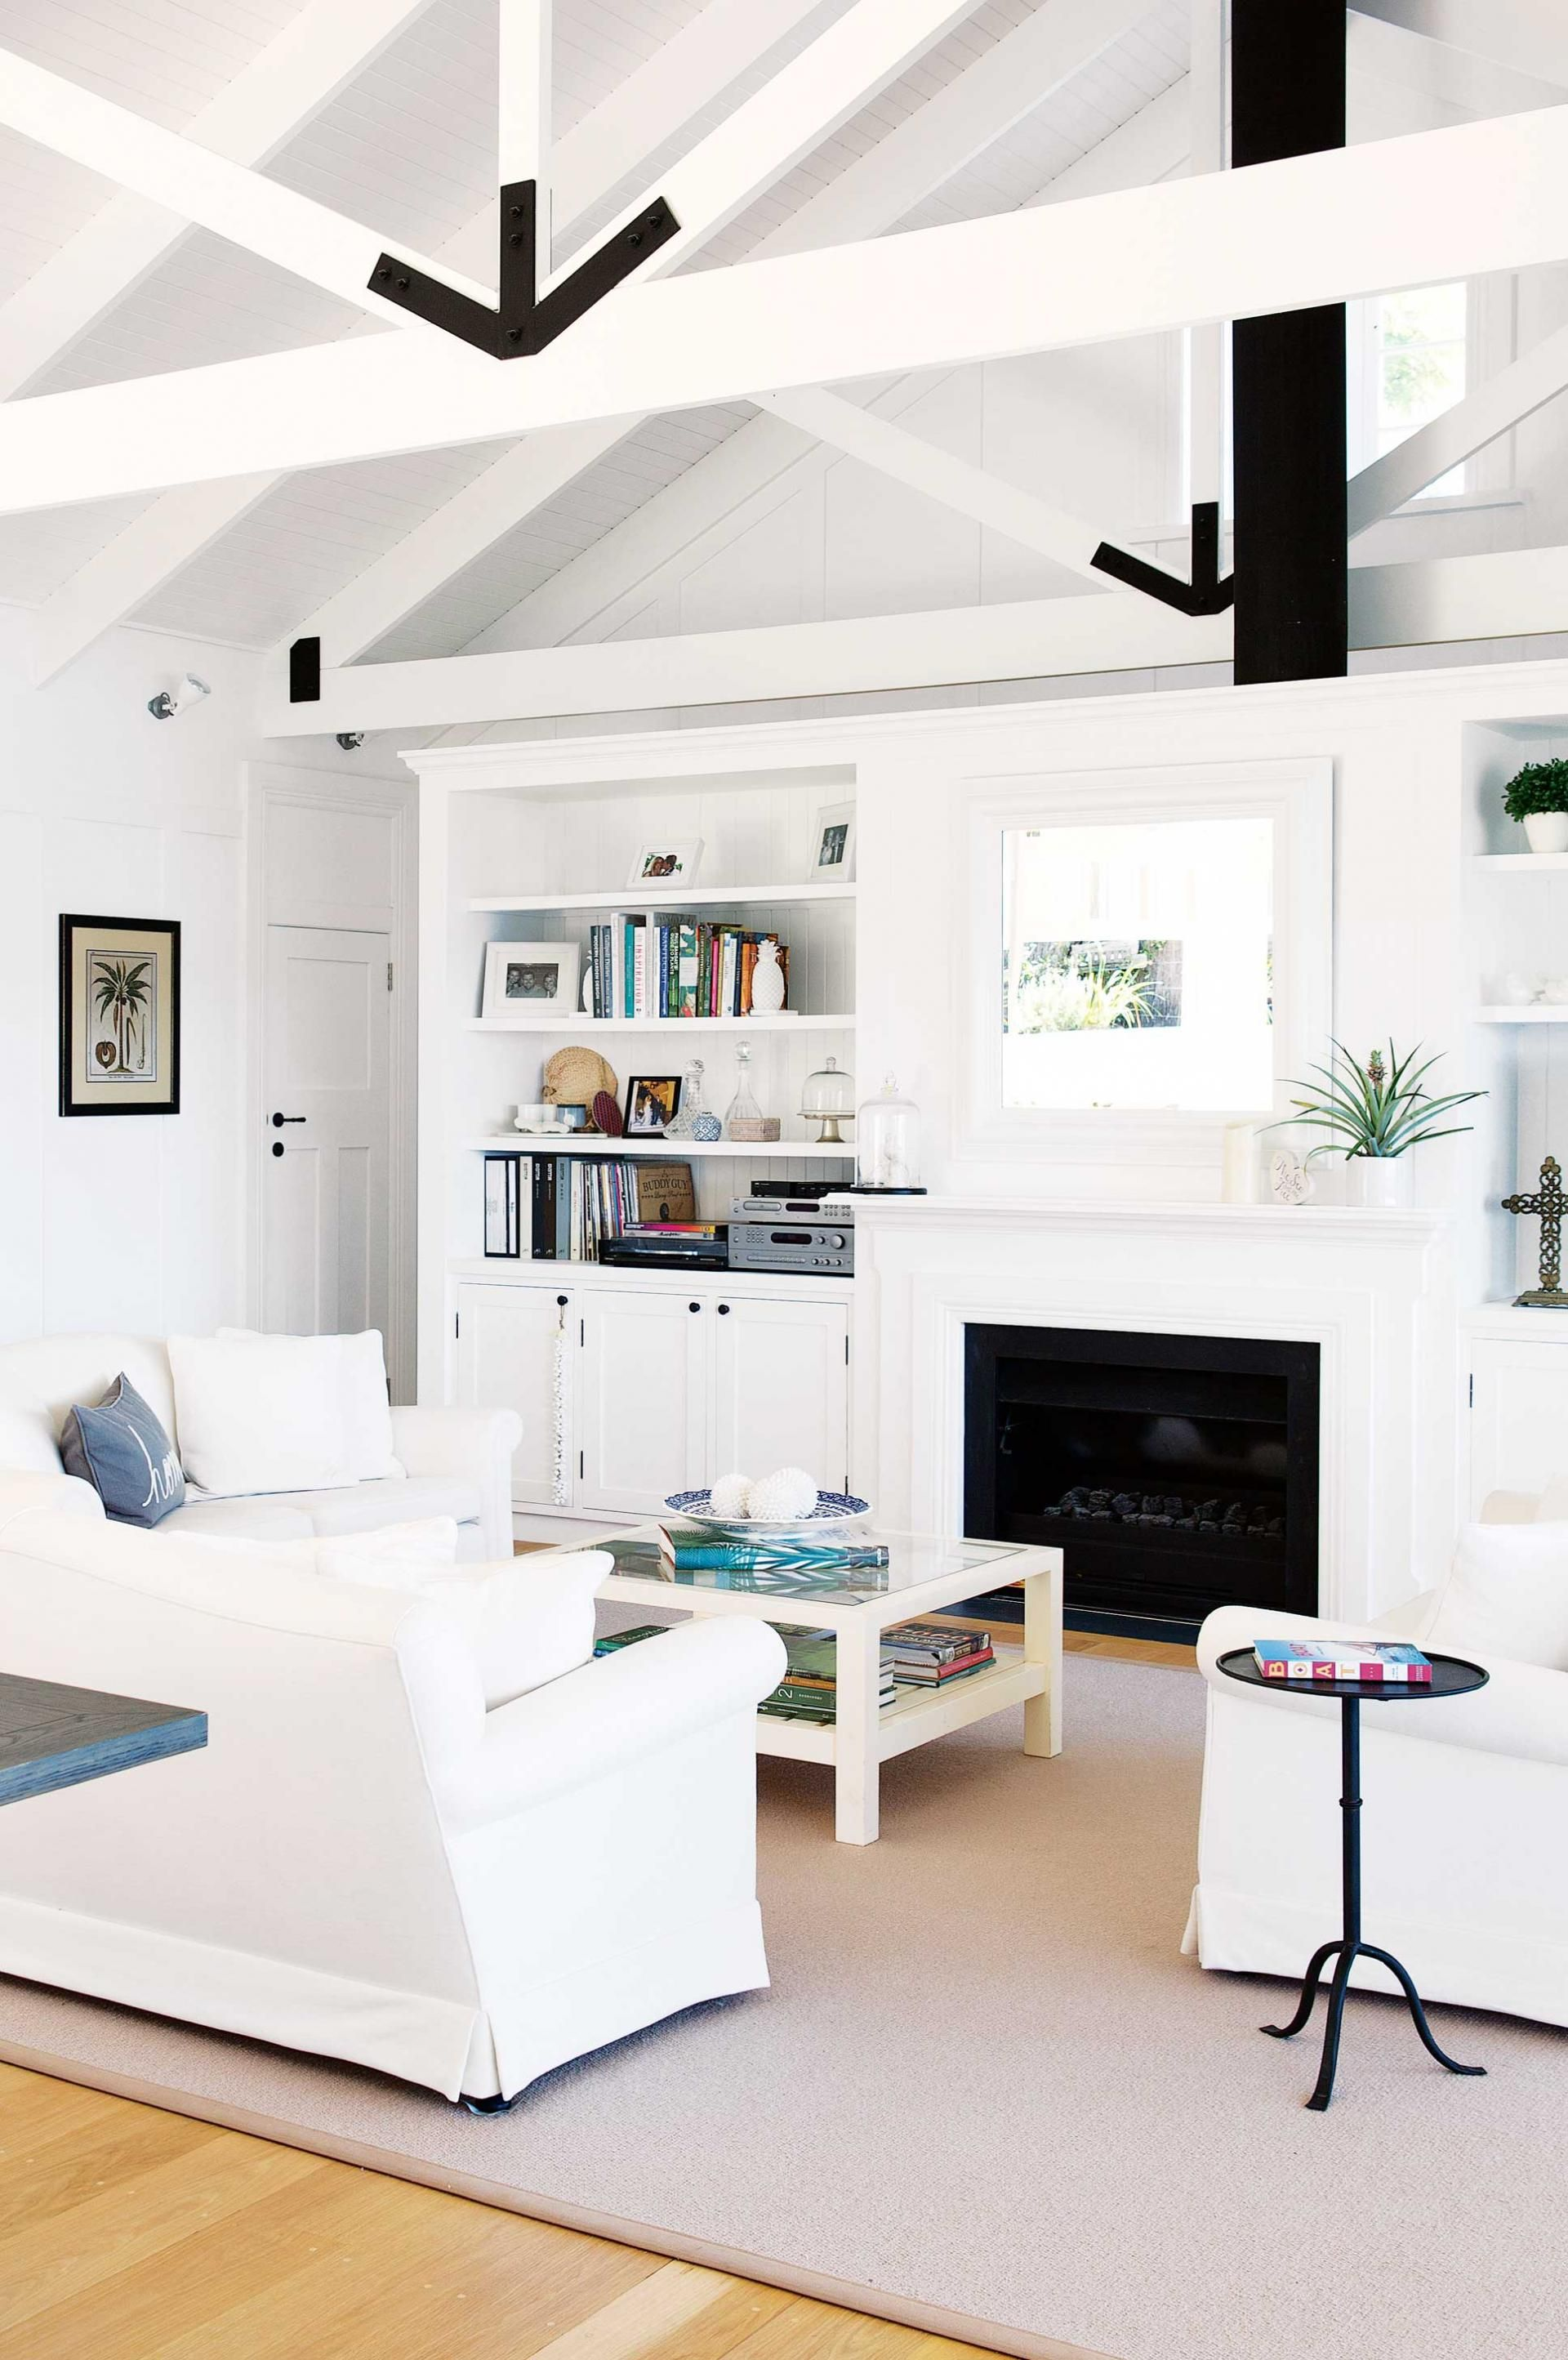 8 tips on how to create a luxury beach house styling by maria dyoniziak - Inside Luxury Beach Homes